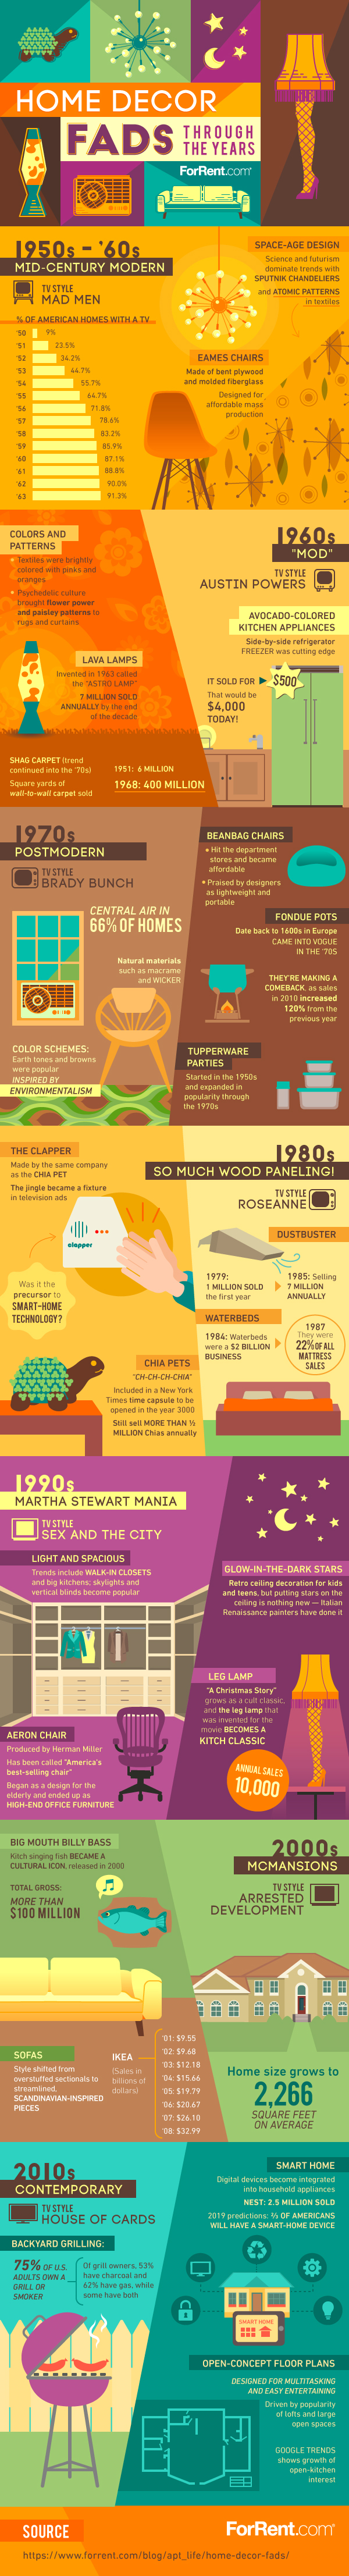 Trendy Home Decor Through The Years - Infographic